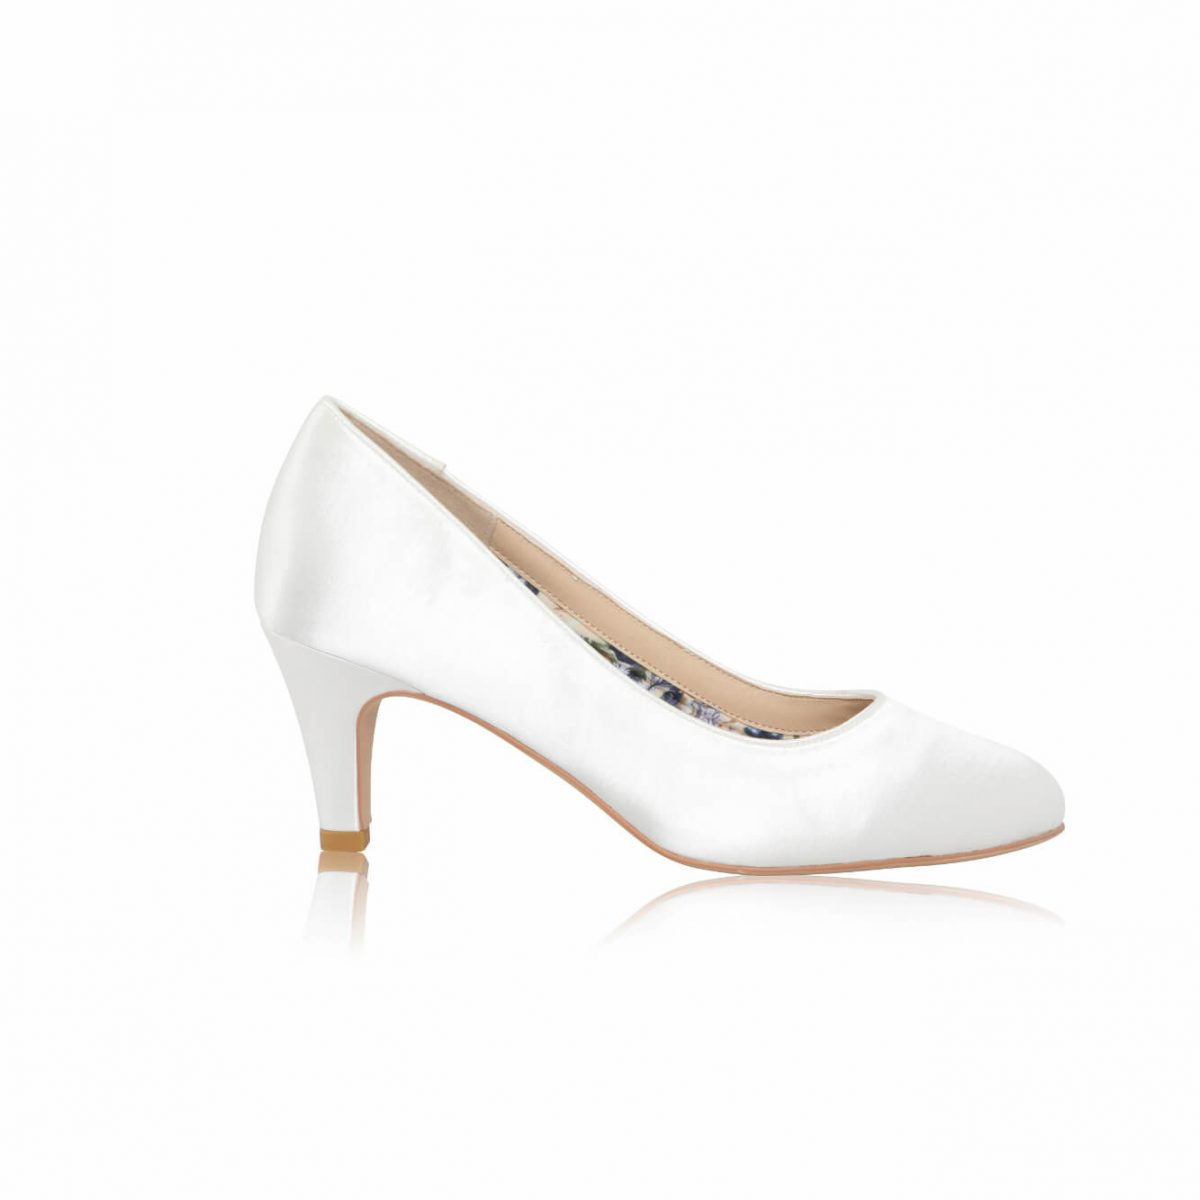 Perfect Bridal Erica Shoes - Ivory Satin - Wide Fit 1